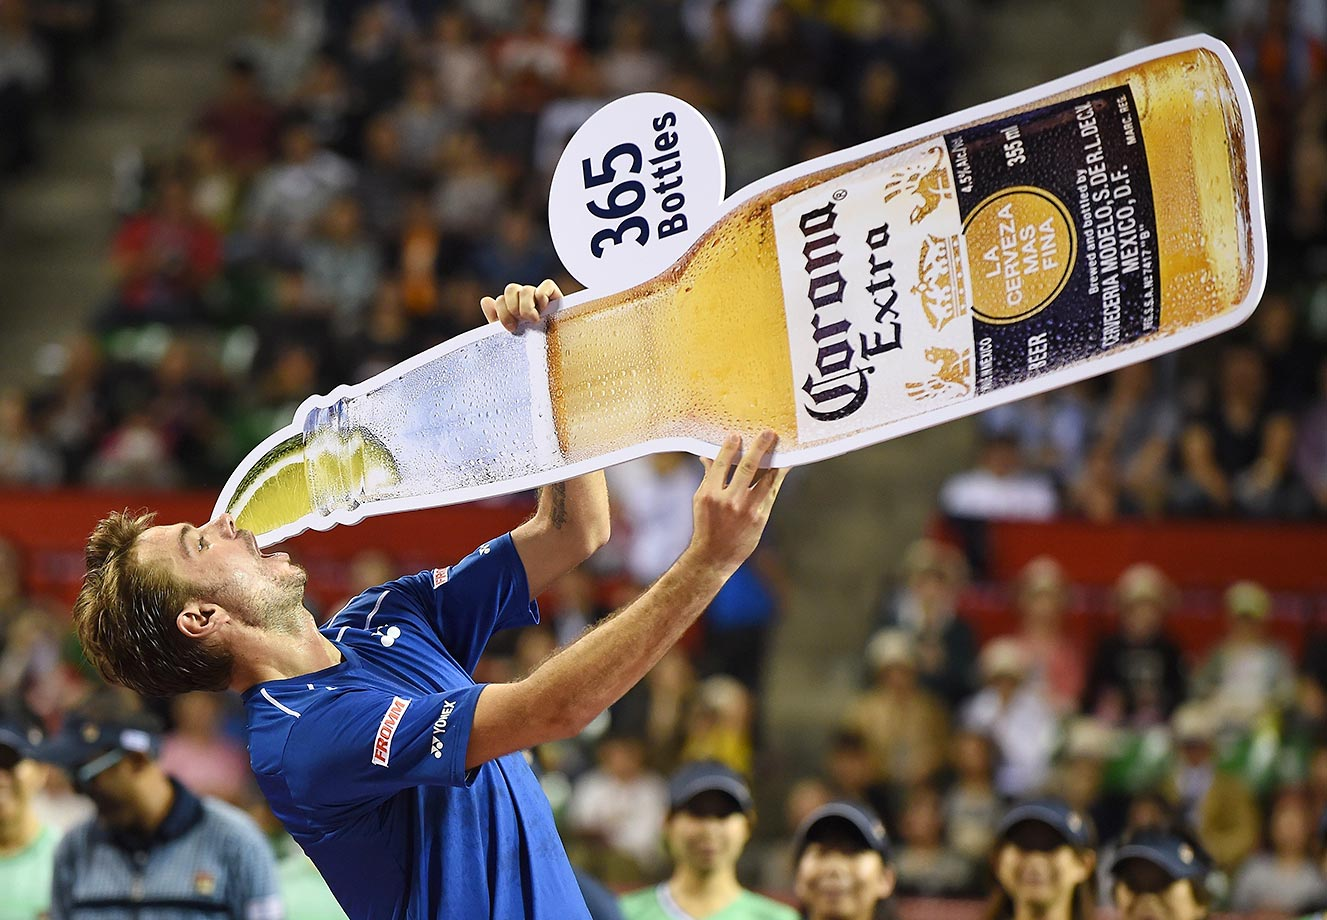 Stan Wawrinka pretends to drink a beer as he celebrates his win over Benoit Paire in the singles final match at the Japan Open.